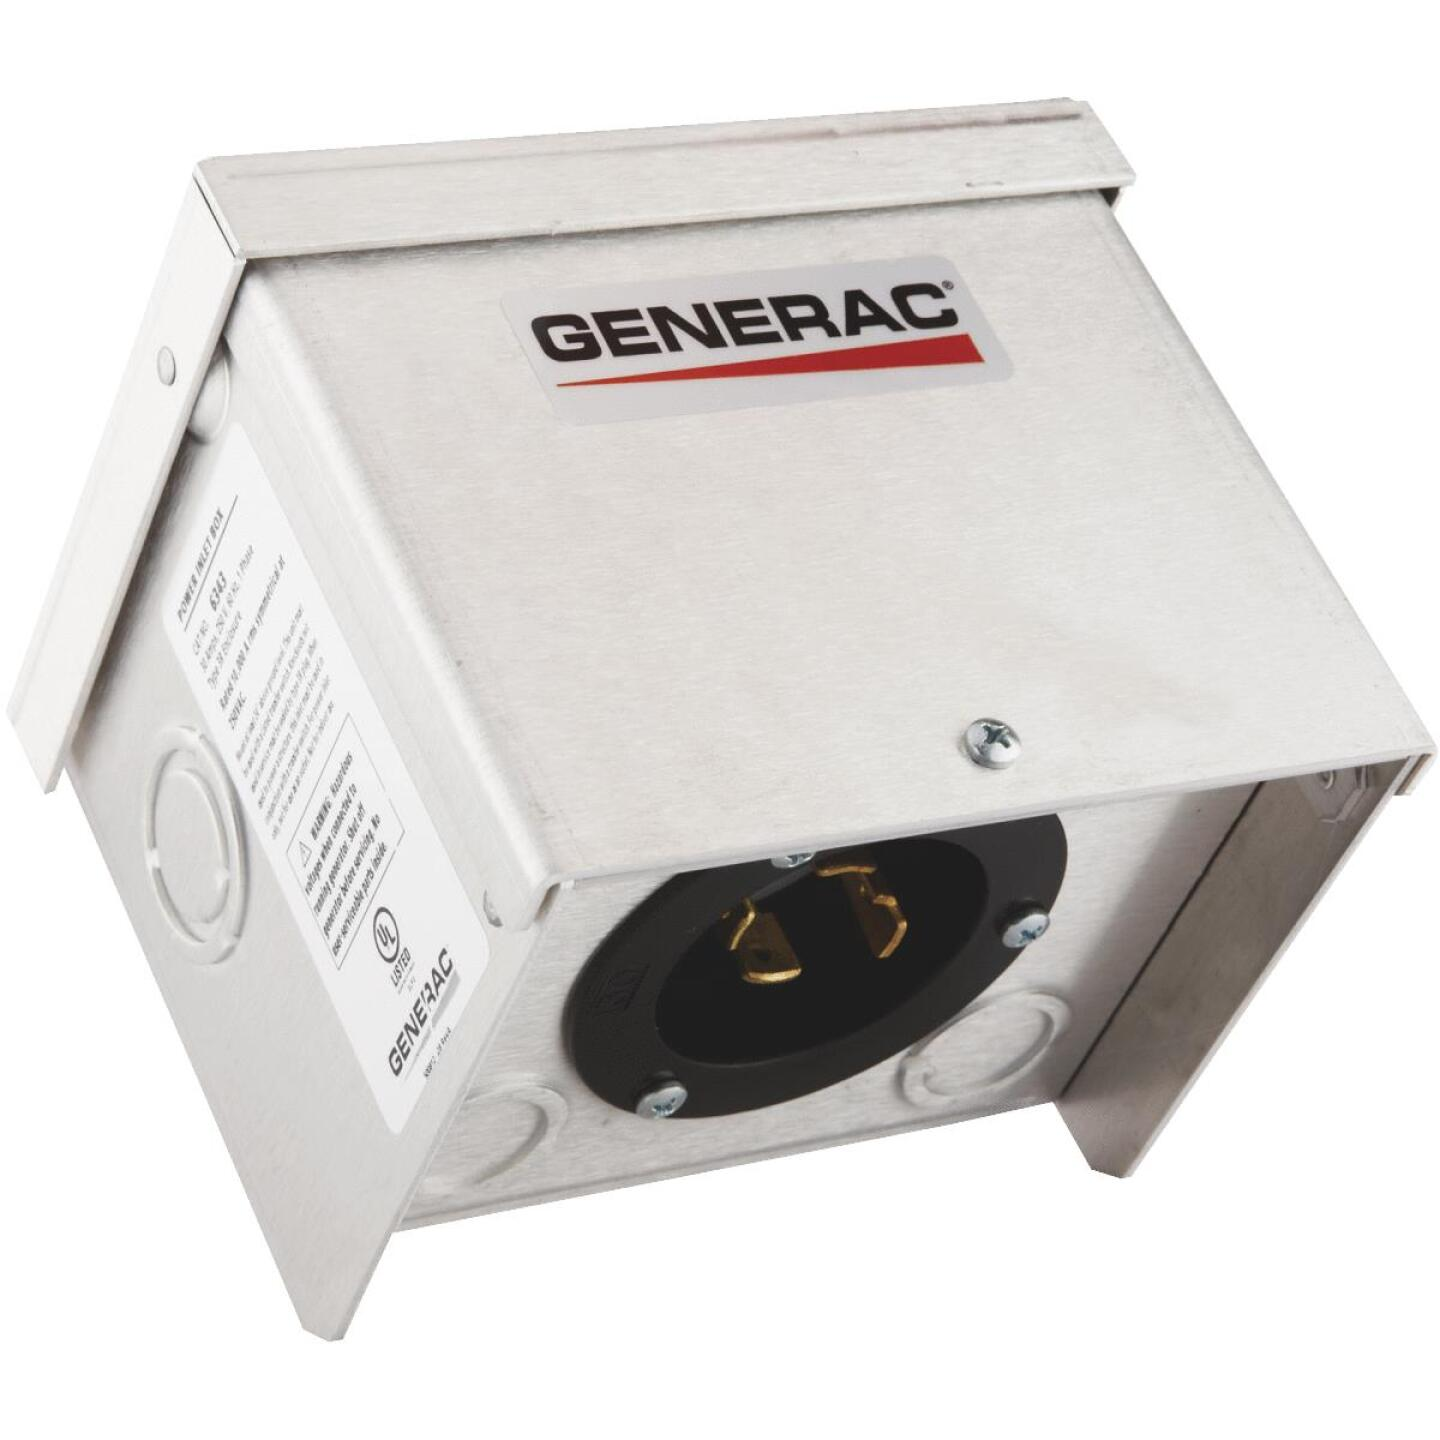 Generac 30A Outdoor Generator Power Inlet Box Image 1